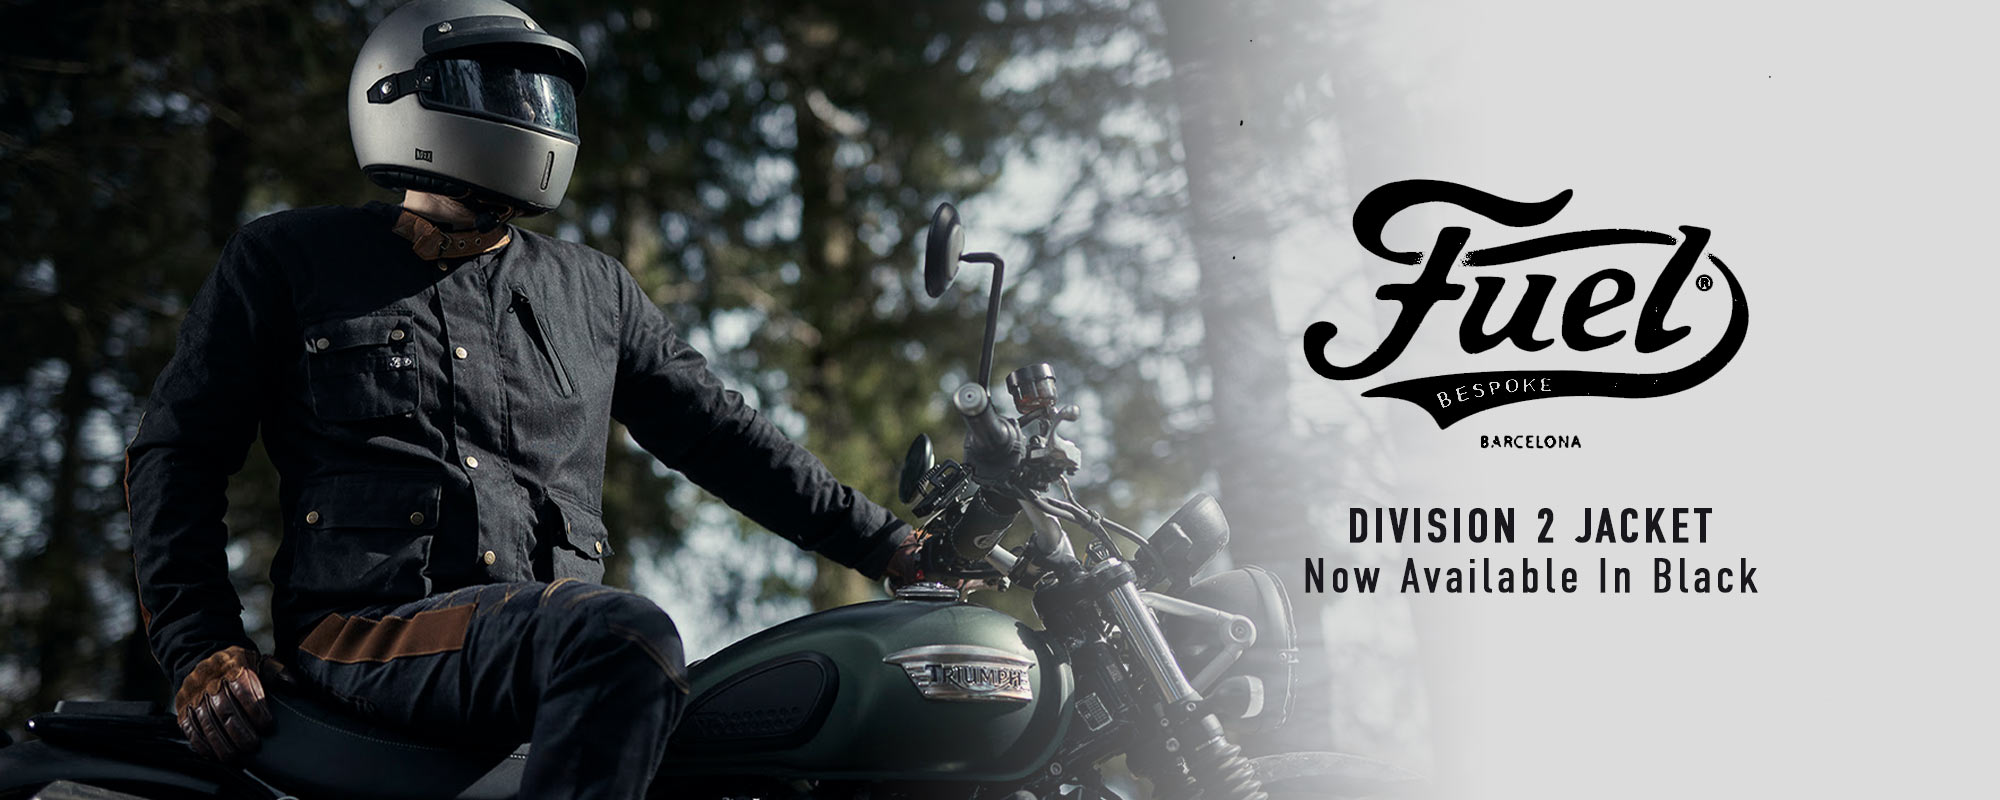 New Fuel Motorcycles Division 2 Jacket Black